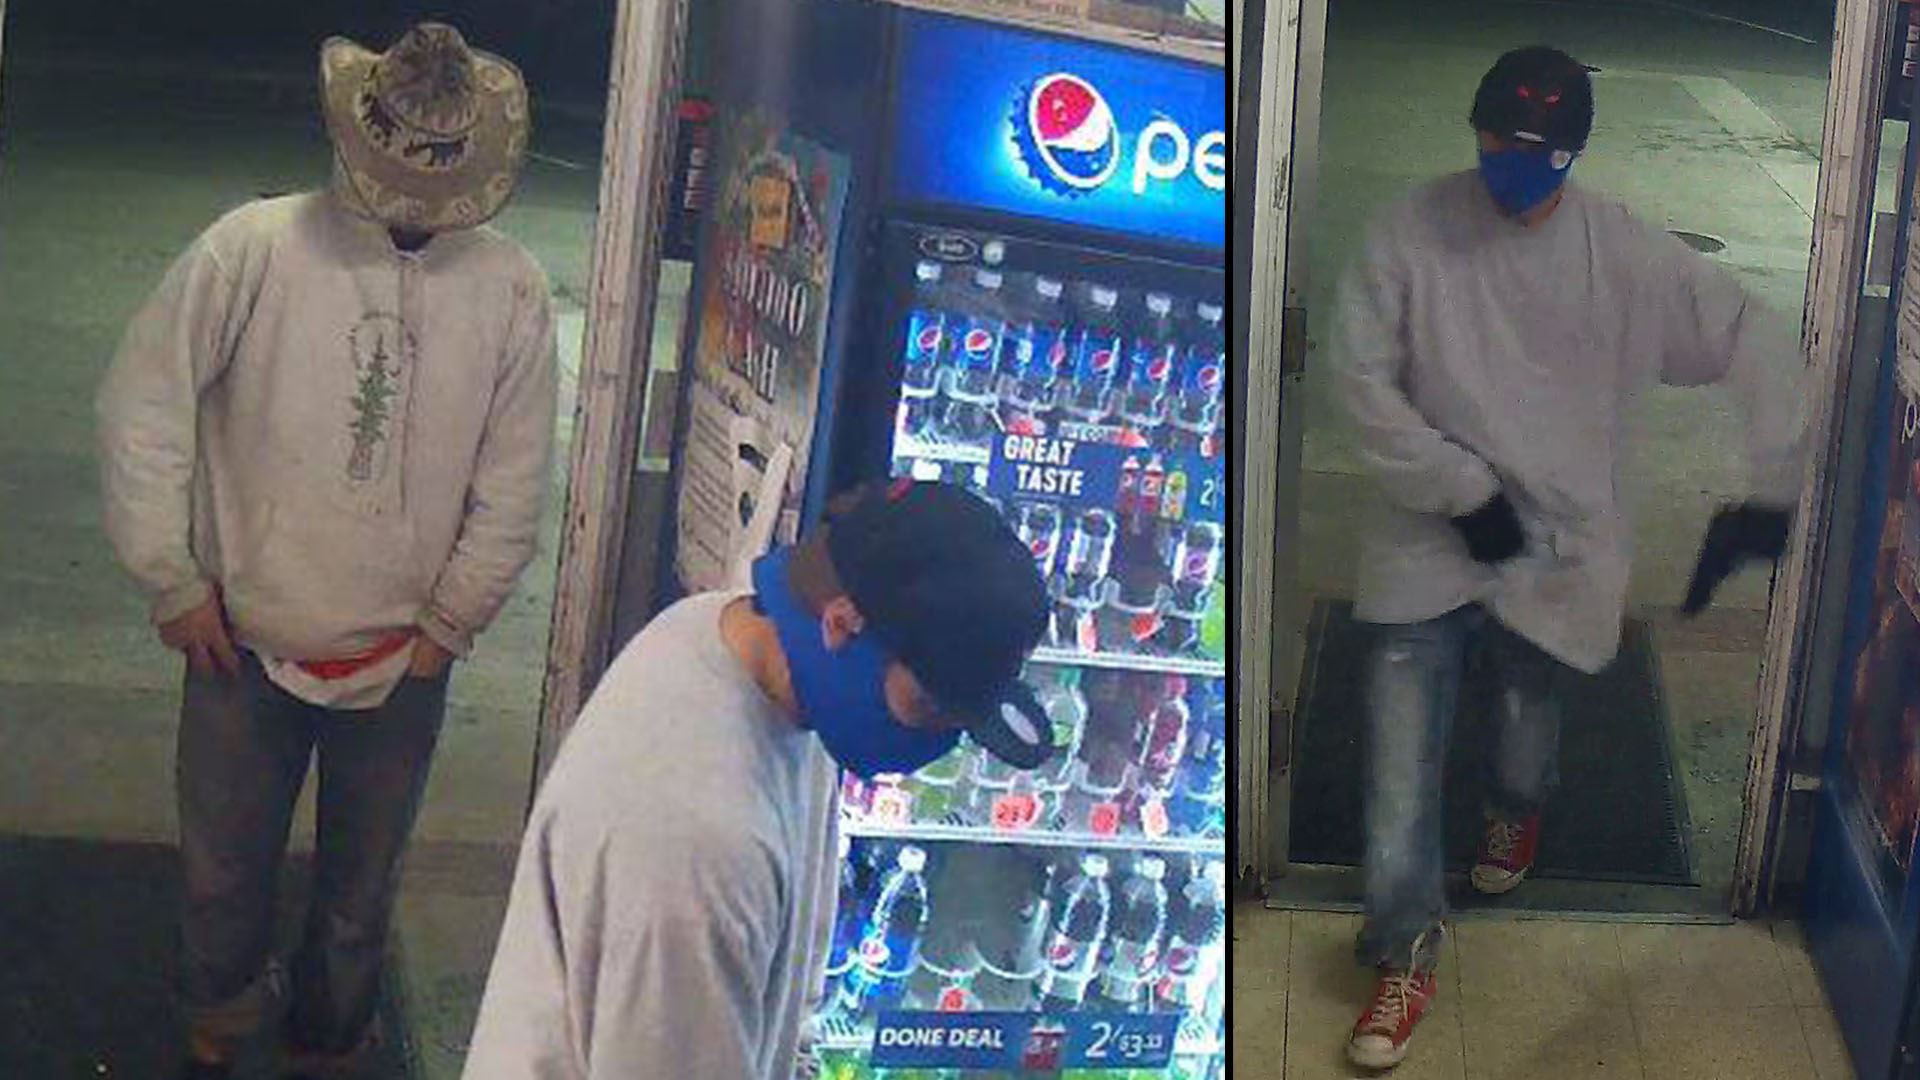 Robbery surveillance from Nov 20, 2018